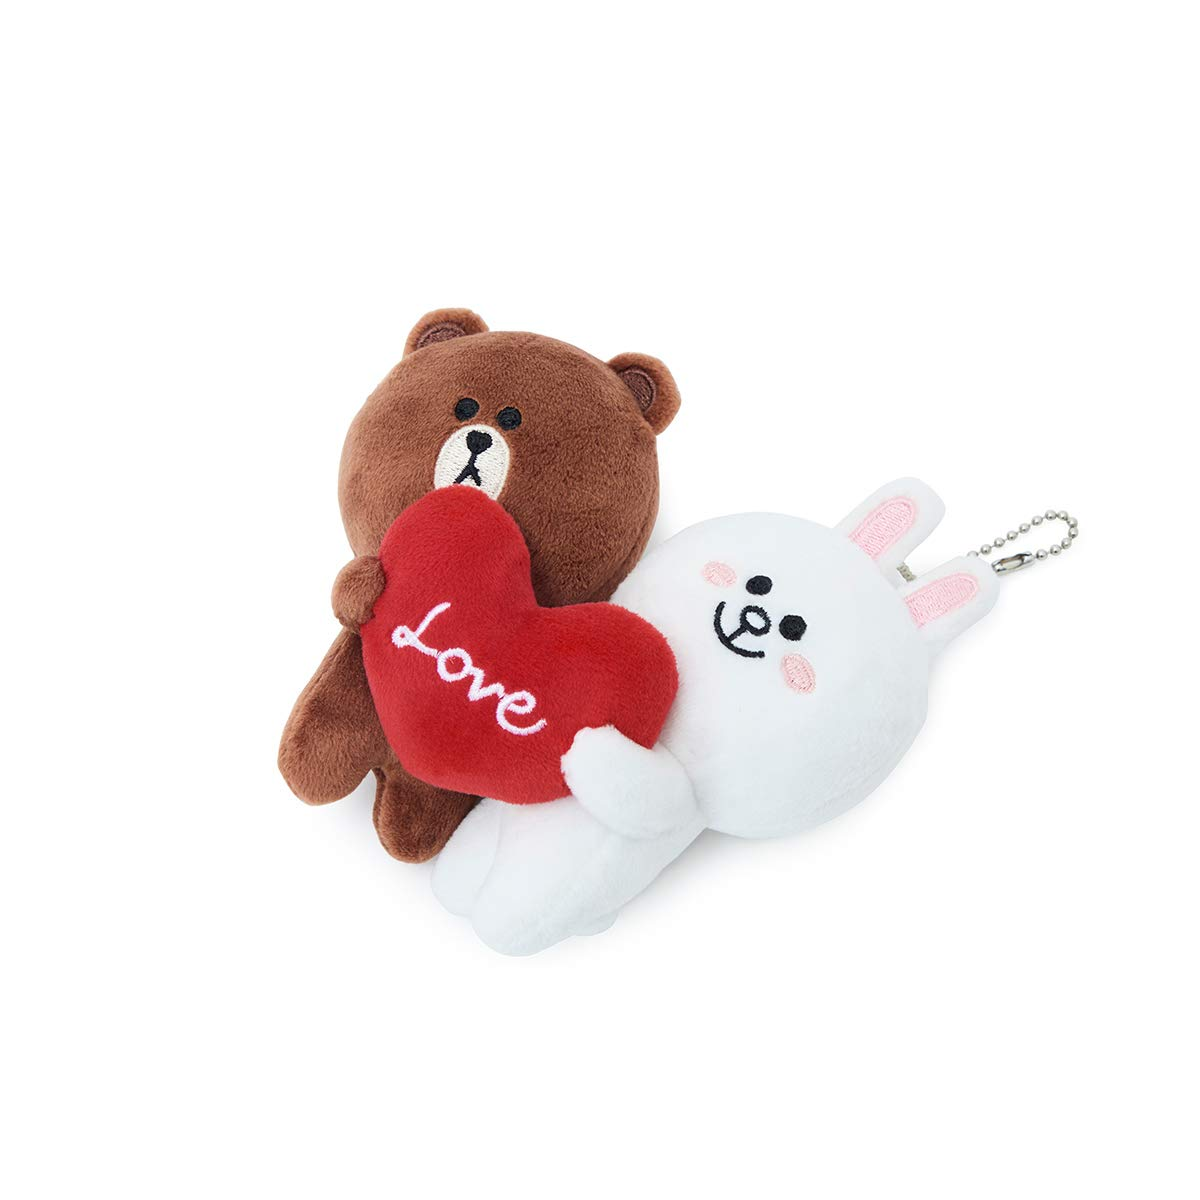 LINE FRIENDS Love Bag Charm - BF Character Keychain Décor 15CM, Brown/White by LINE FRIENDS (Image #7)